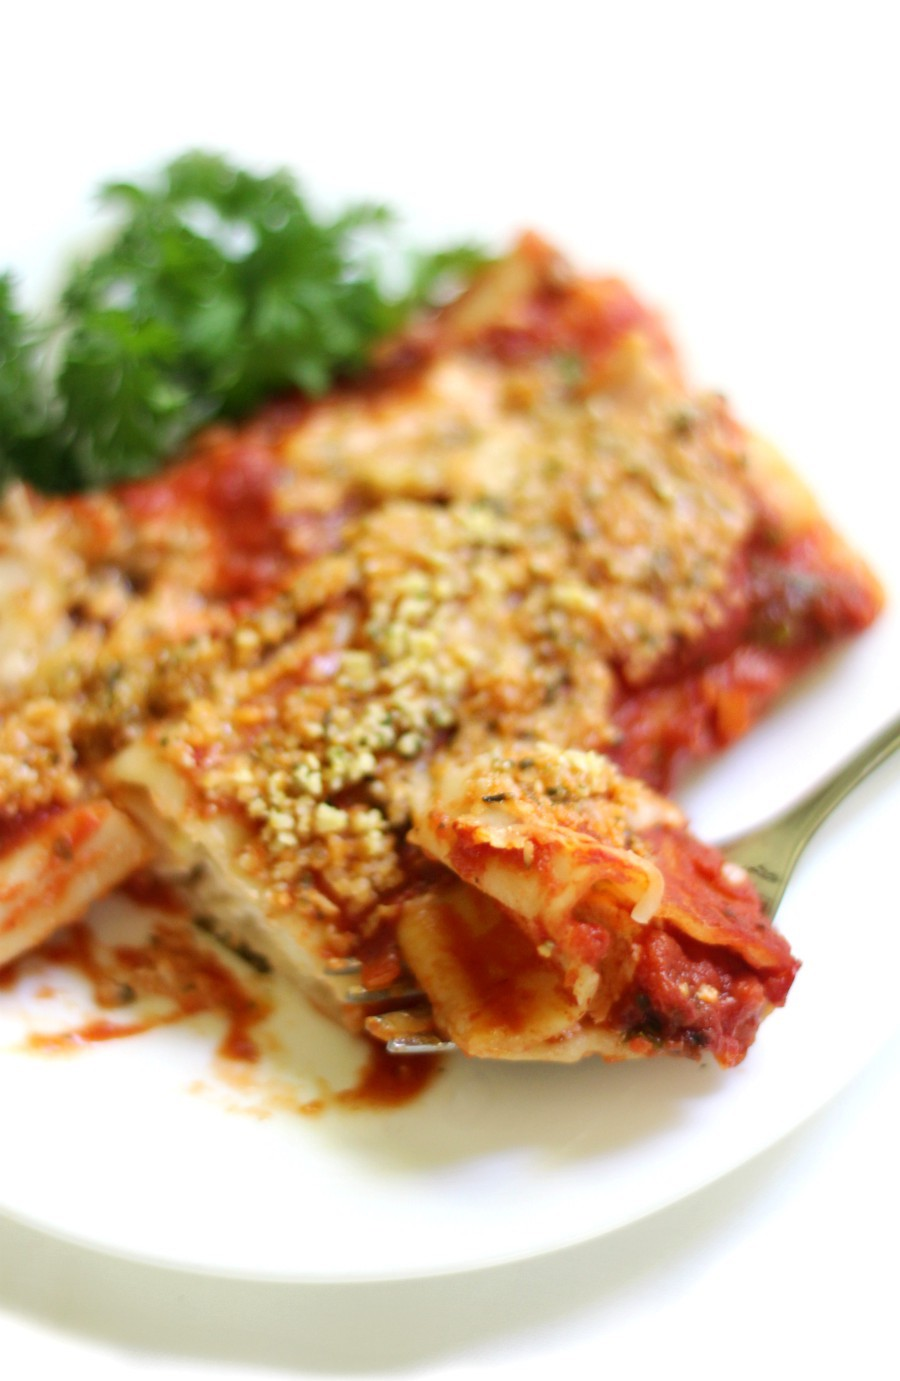 "Classic Baked Gluten-Free + Vegan Manicotti (Soy-Free) | Strength and Sunshine @RebeccaGF666 No more missing out on your Italian favorite! A Classic Baked Gluten-Free & Vegan Manicotti recipe with homemade tomato sauce, a creamy dairy-free & soy-free cheesy filling, all topped with a homemade 2-ingredient ""parmesan""! A perfect comfort food dinner the whole family will enjoy! #glutenfree #vegan #pasta #dinner #manicotti #dairyfree #soyfree #eggfree #glutenfreepasta"